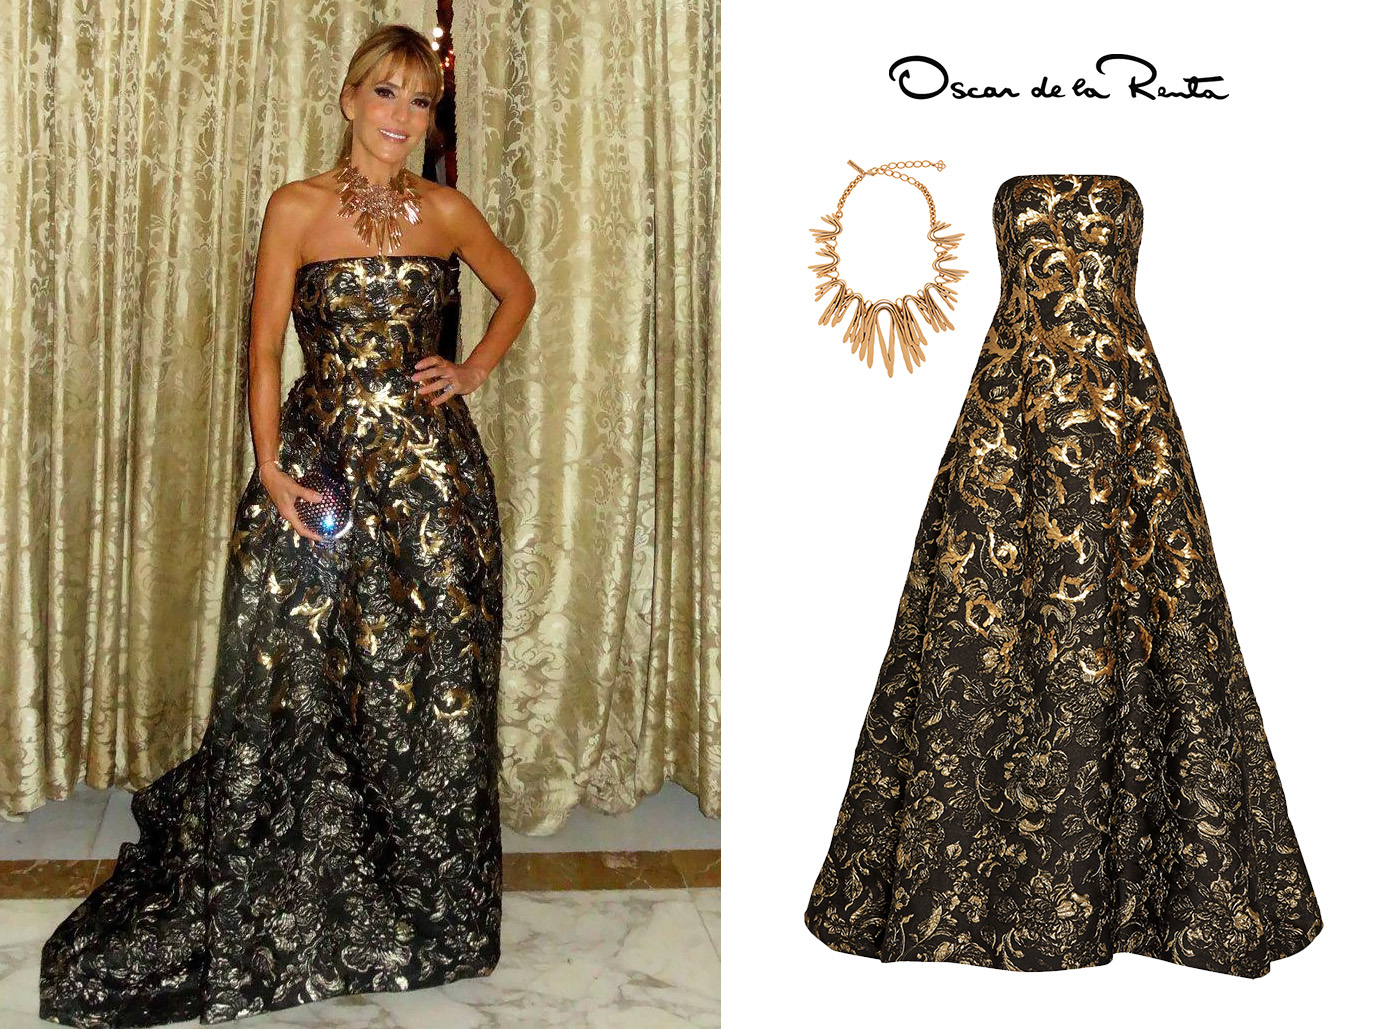 Patricia-della-Giovampaola-Darenberg-Fundaleu-2015-Oscar-de-la-renta-Brown-Golden-Embroidered-Dress.jpg